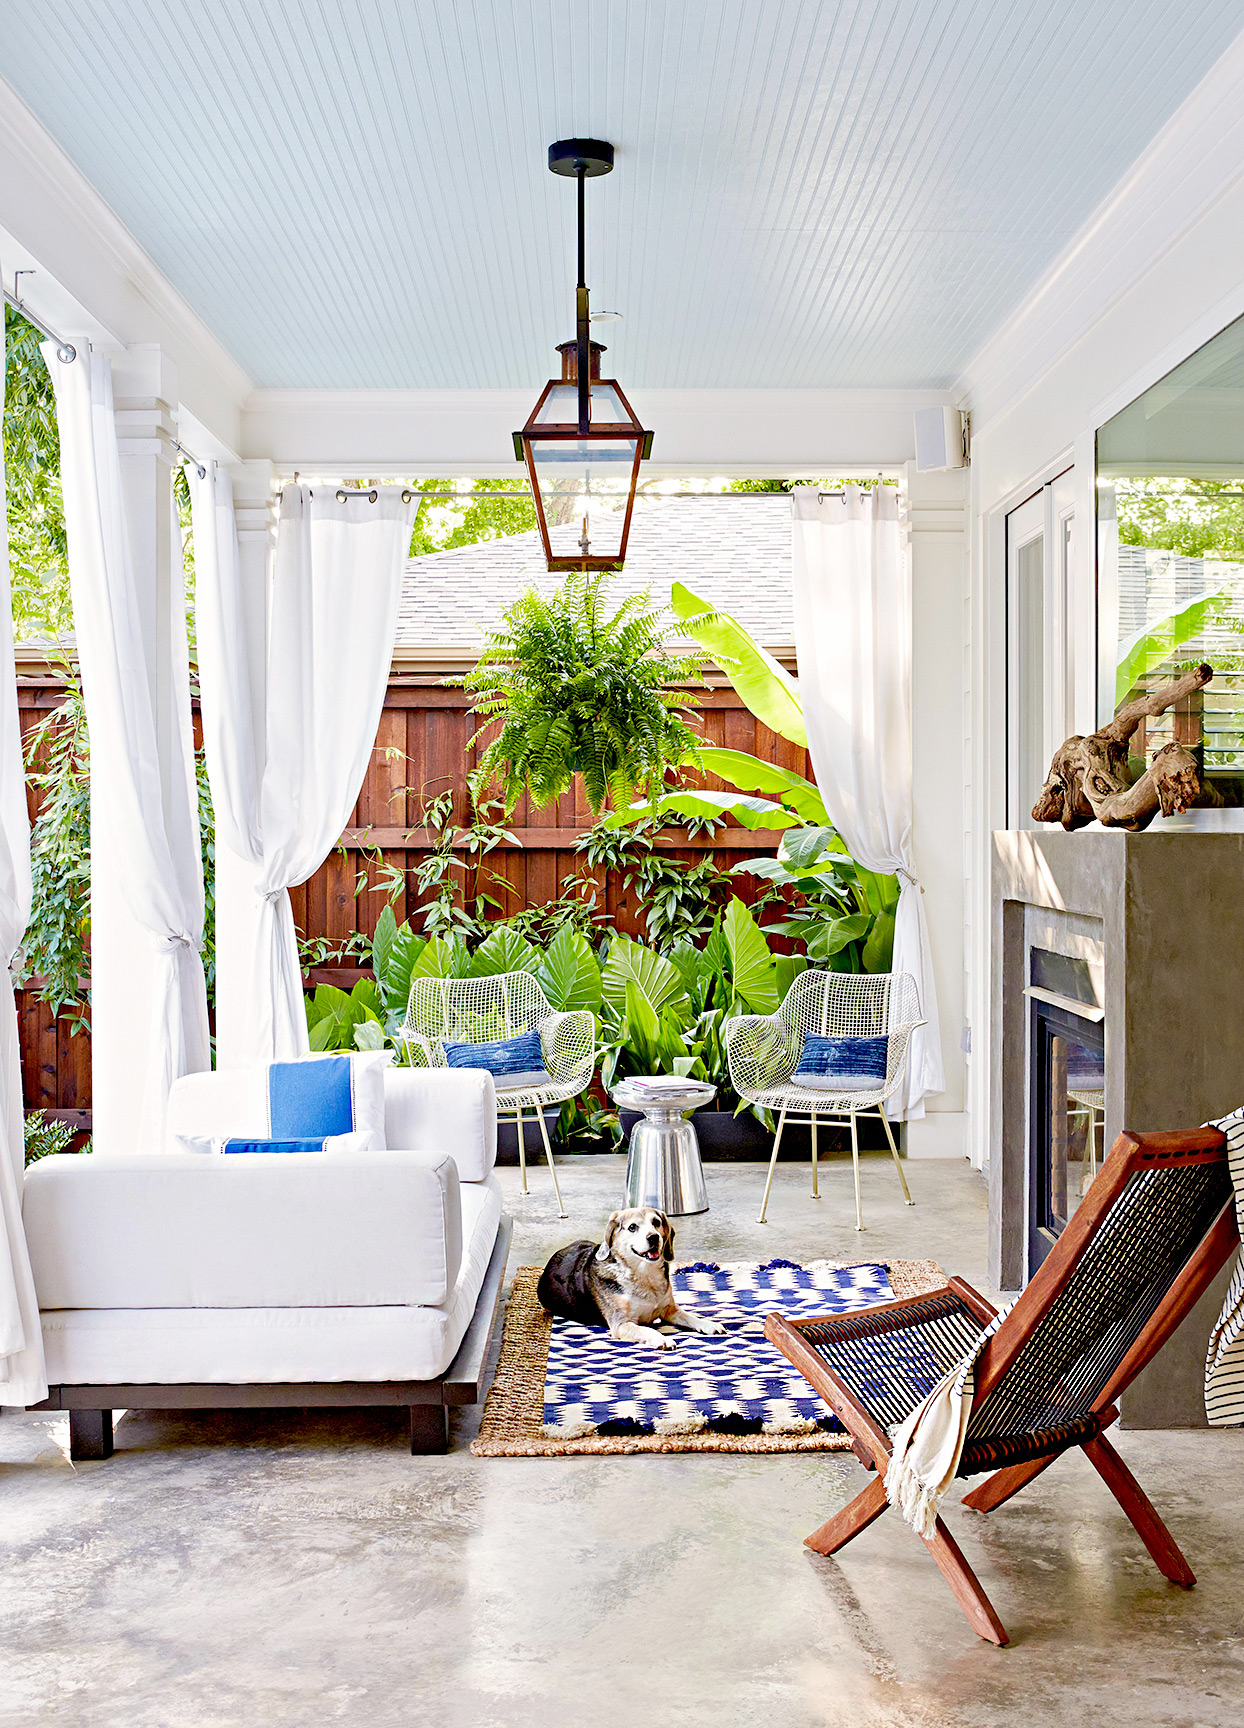 Porch with couch, curtains, dog